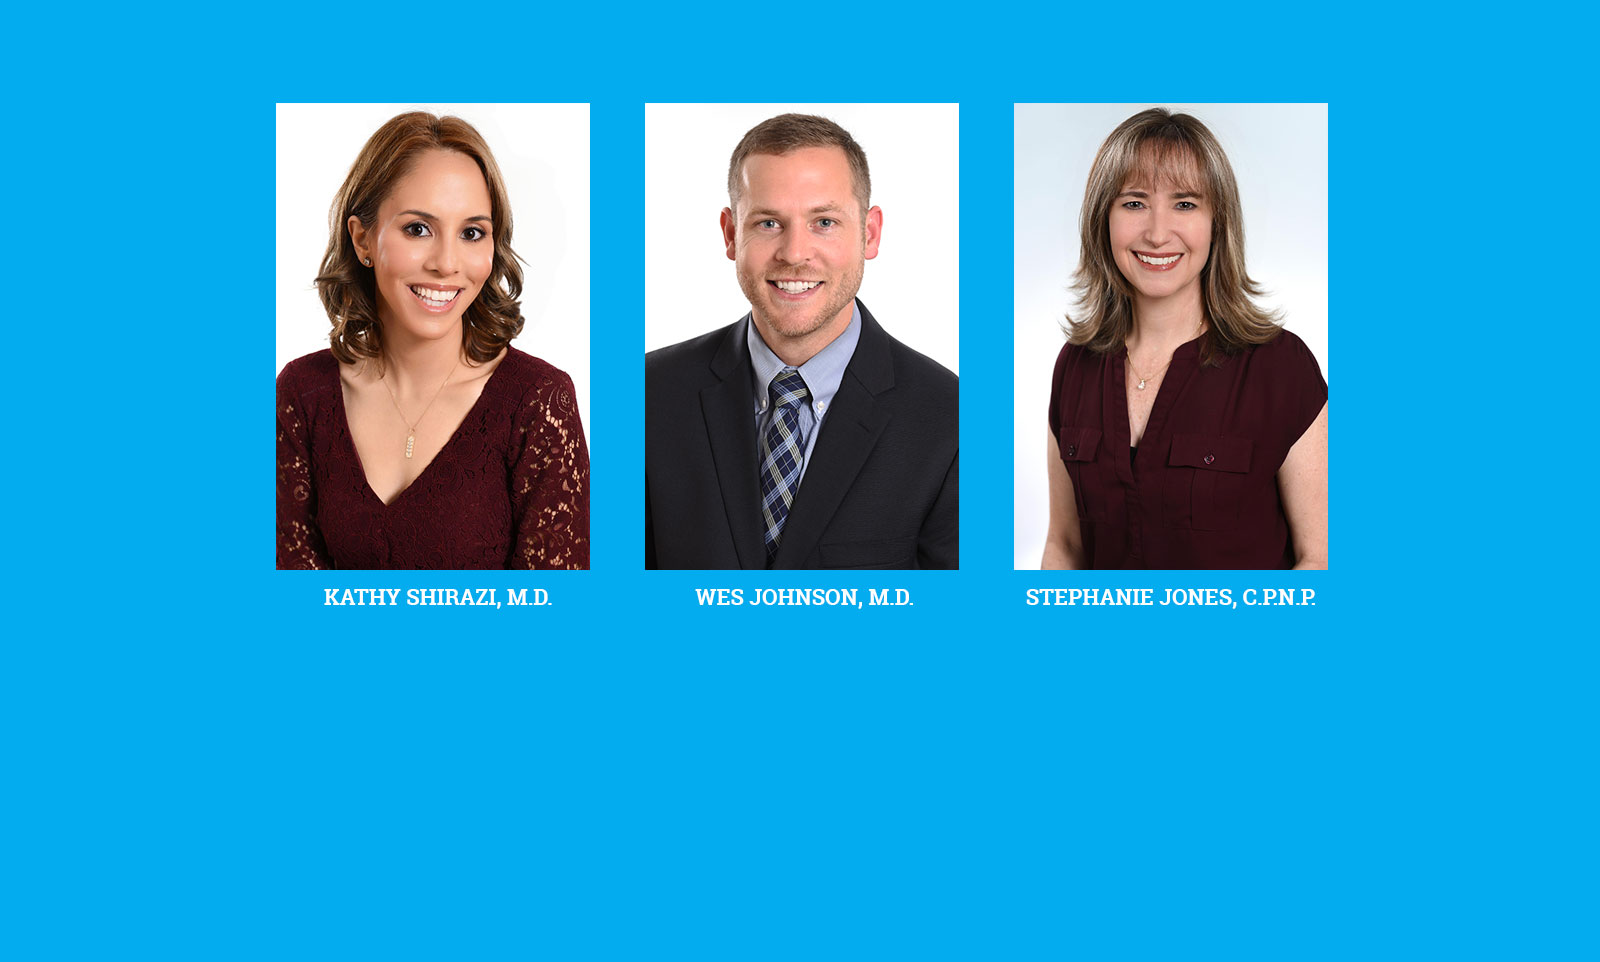 New providers Banner image for Gwinnett Pediatrics and Adolescent Medicine, Gwinnett Pediatricians